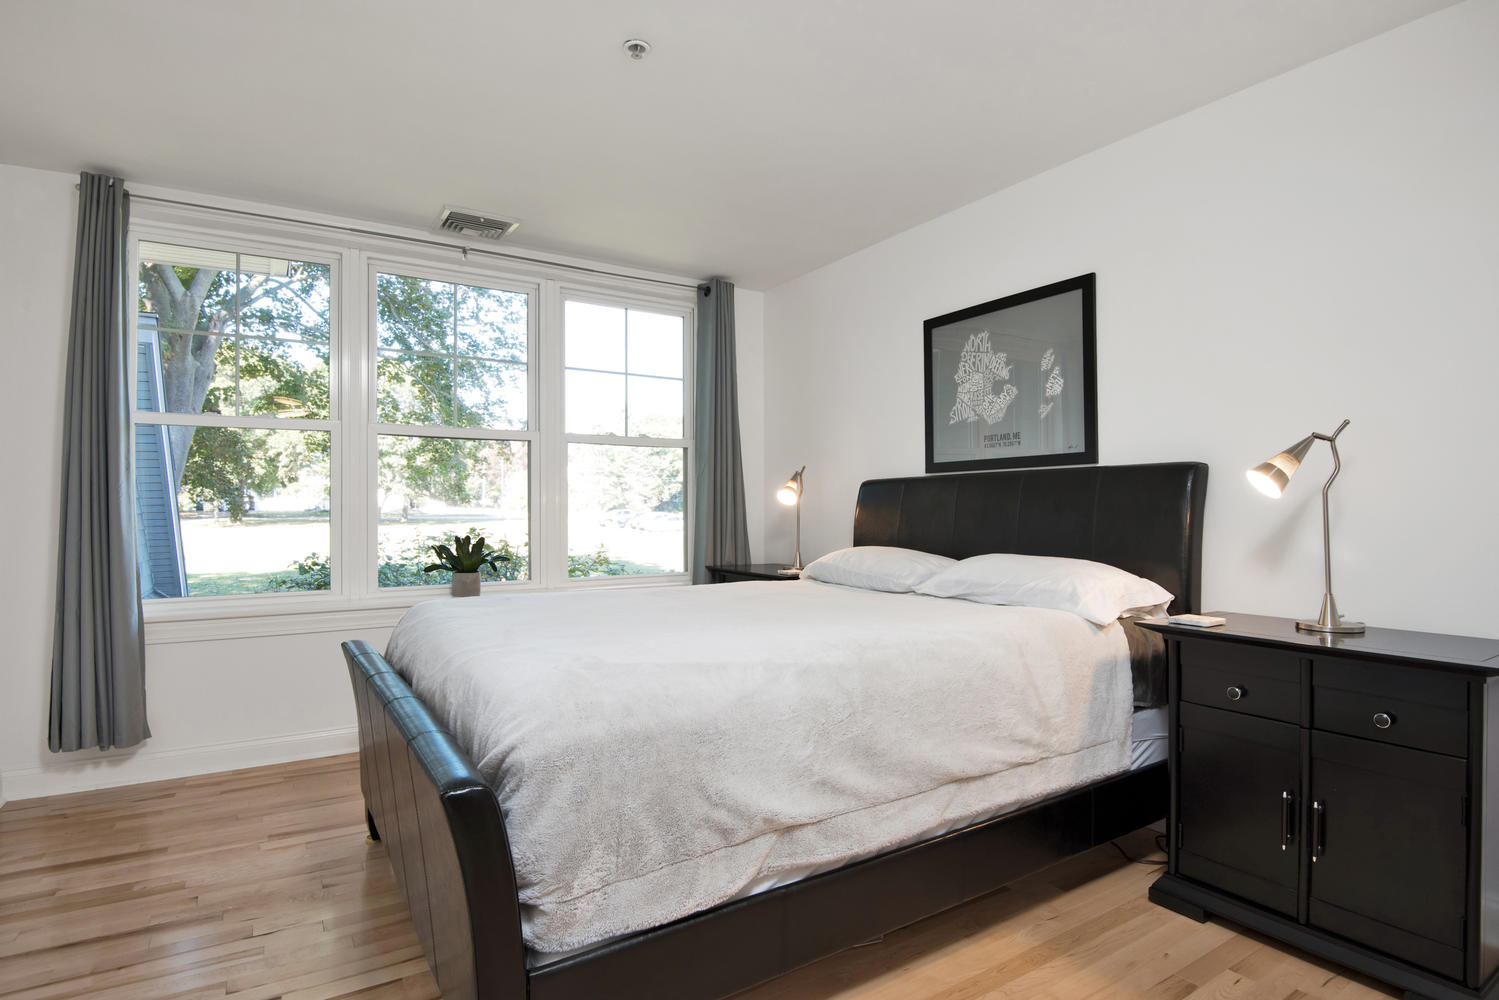 7 Camperdown Elm Dr-large-021-12-Bedroom-1499x1000-72dpi.jpg